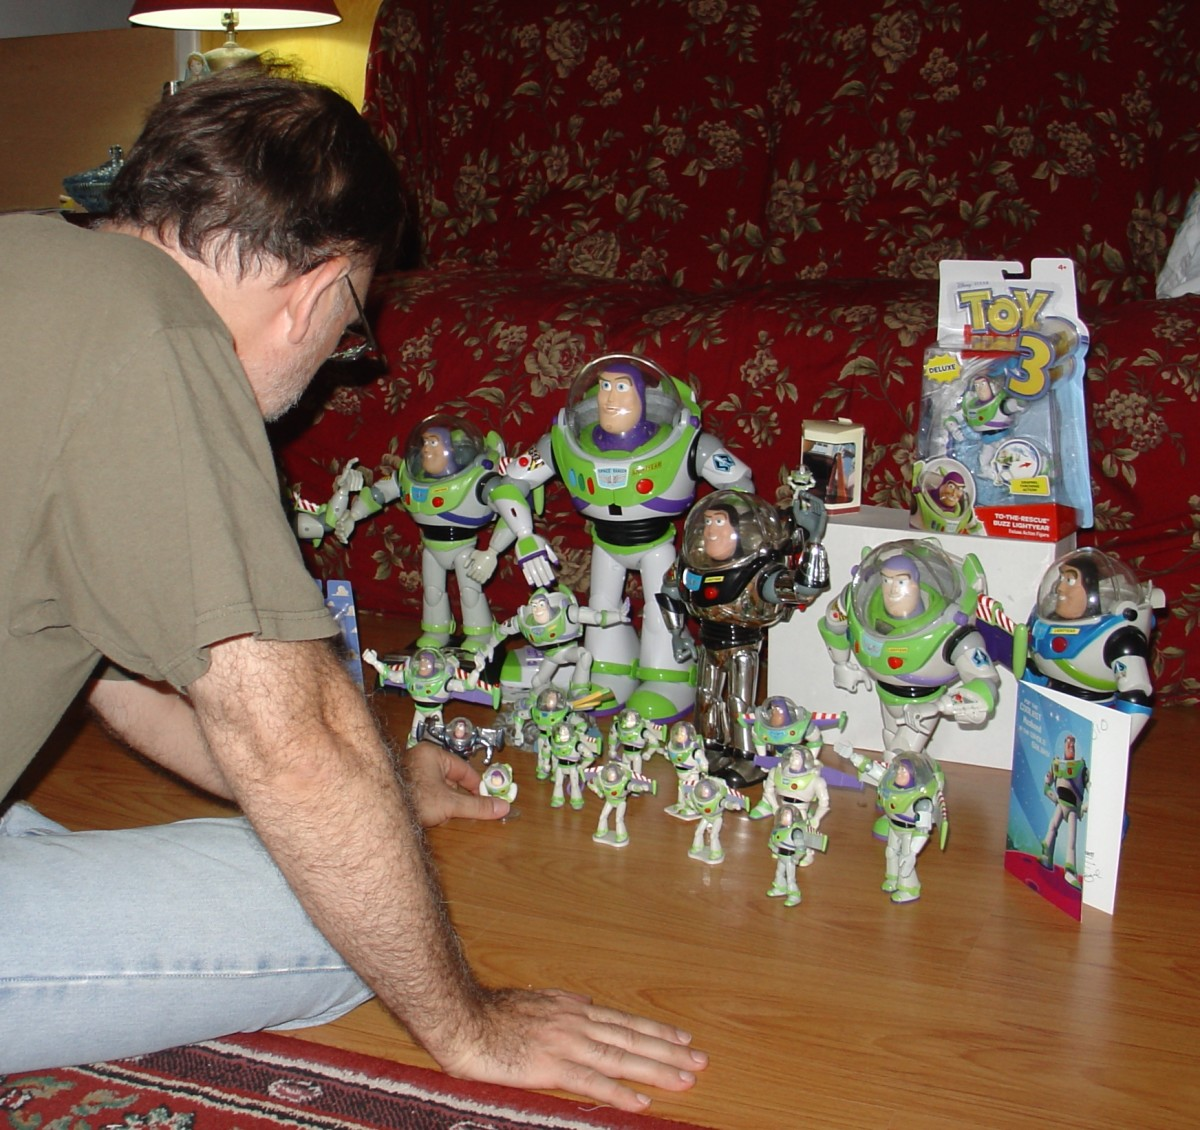 Just having fun with my Buzz Lightyear collection